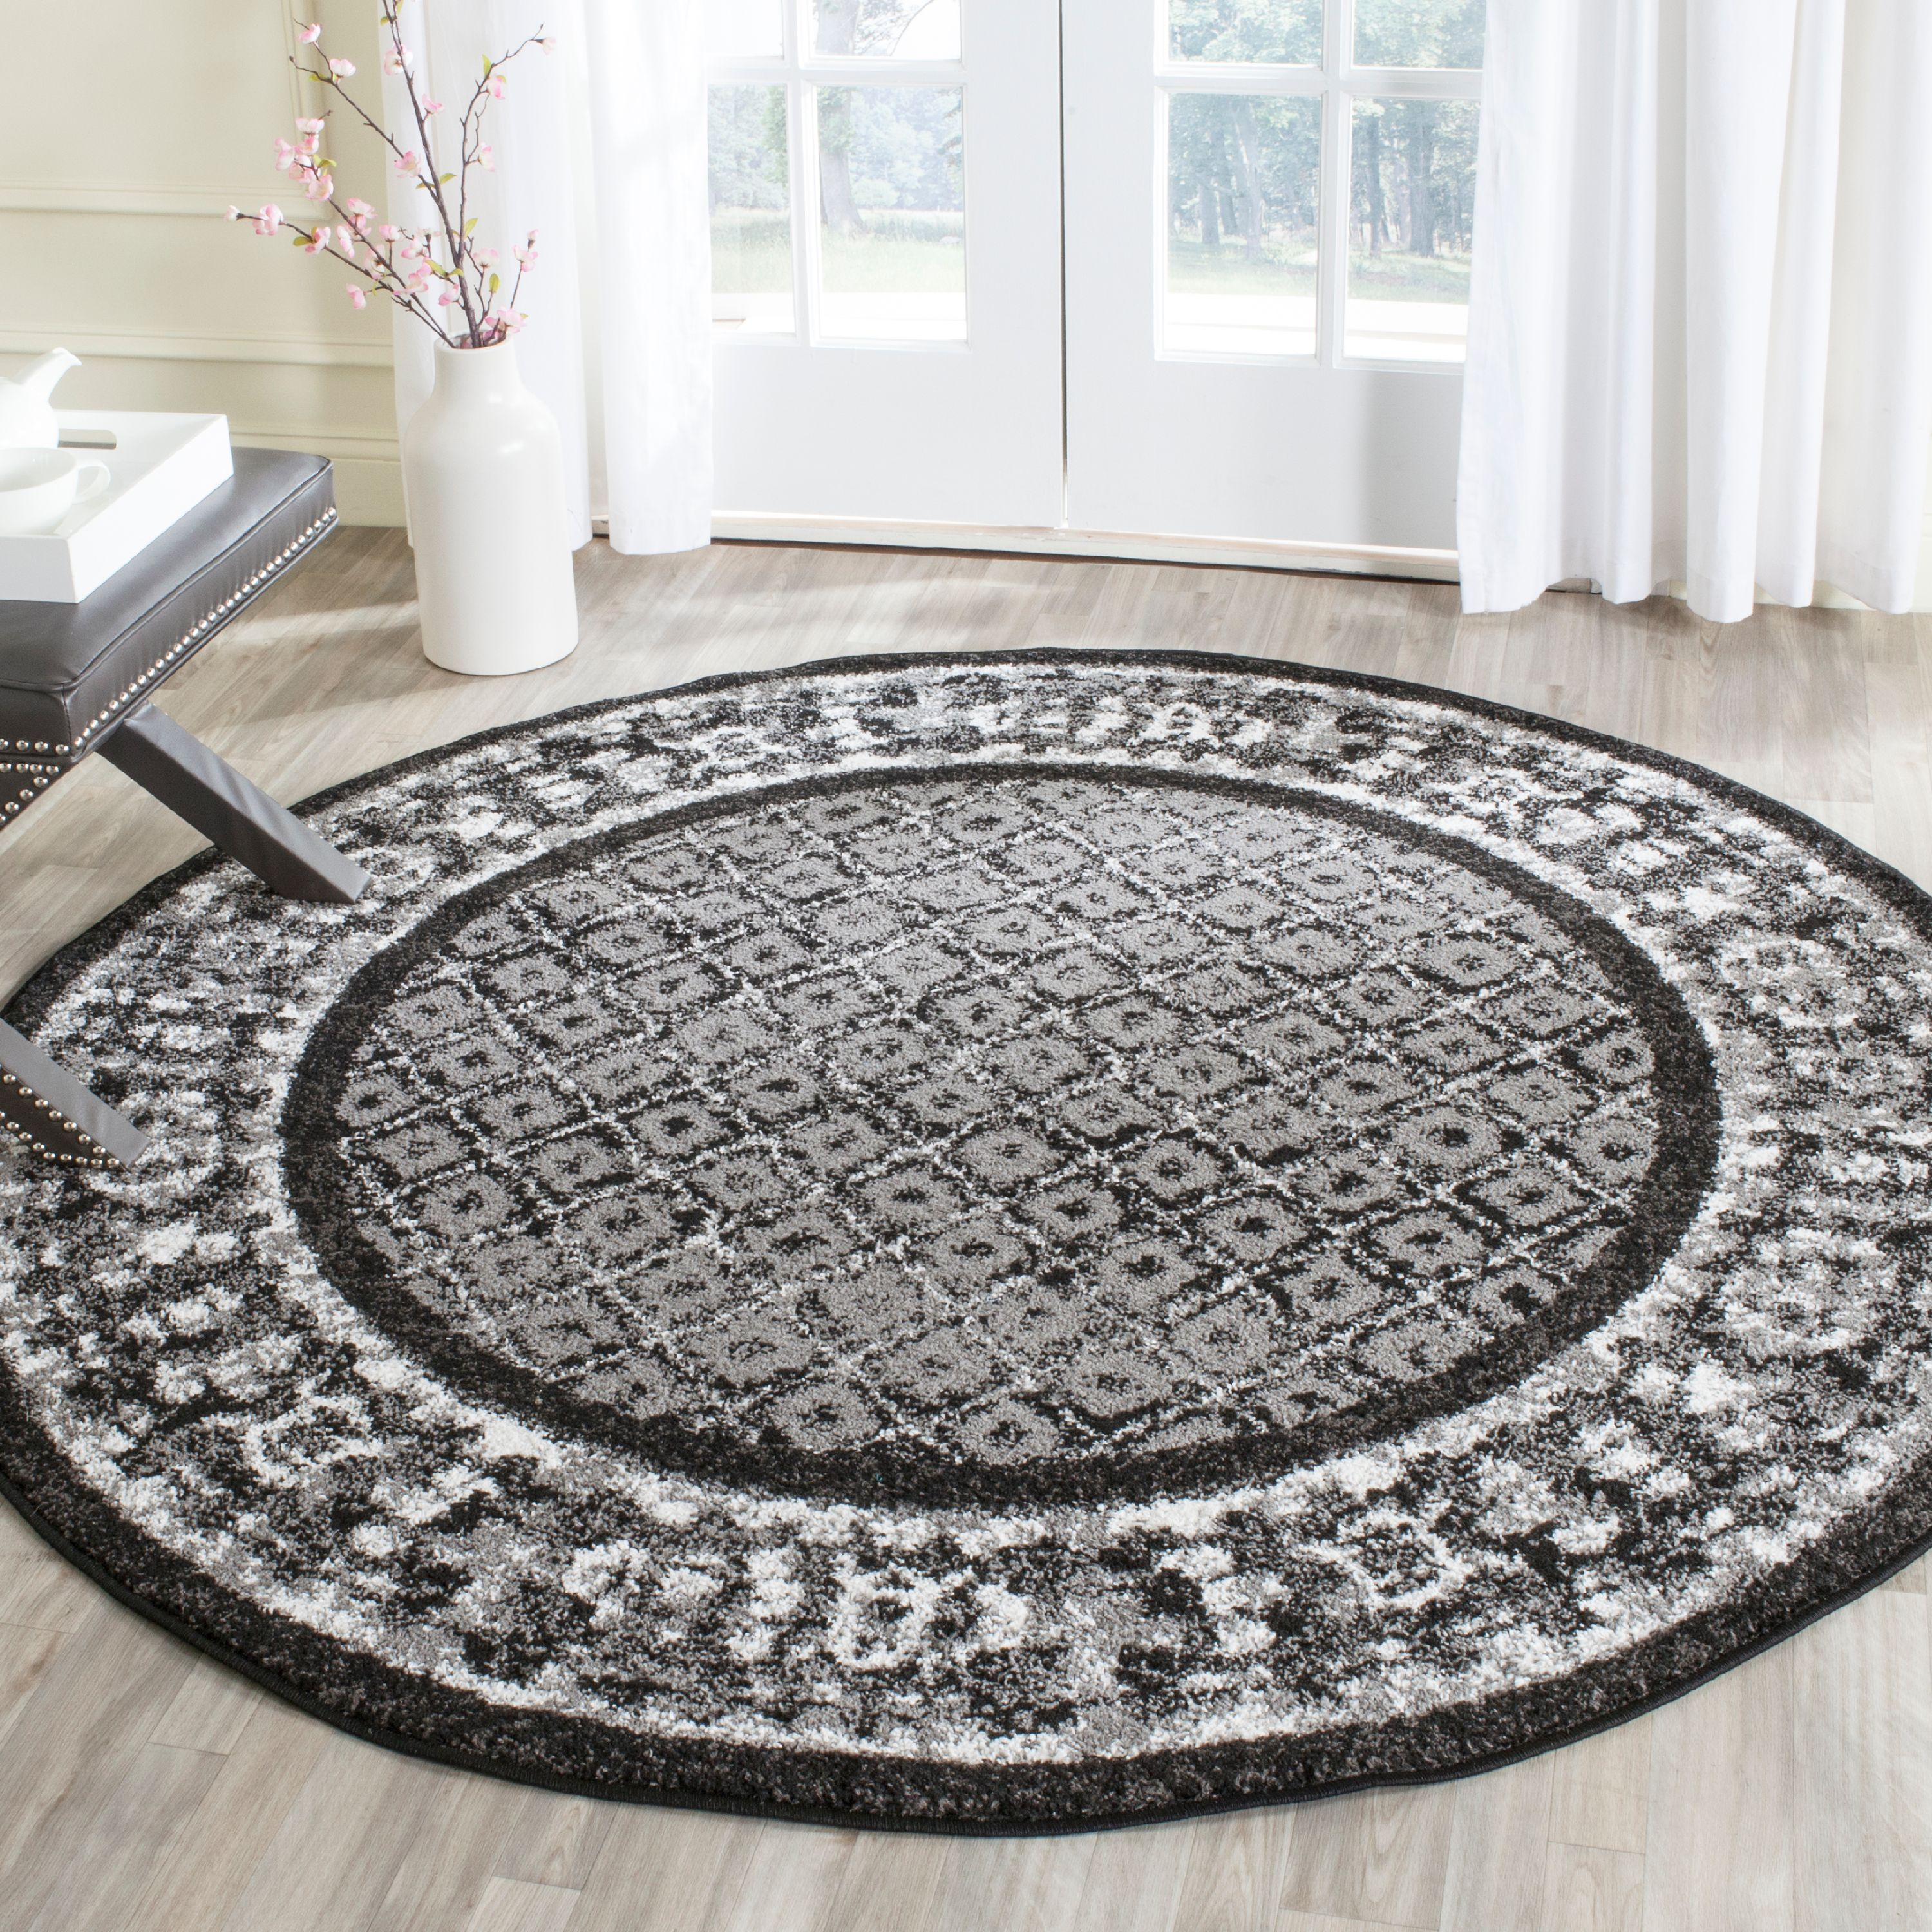 Safavieh Adirondack Royston Traditional Area Rug or Runner